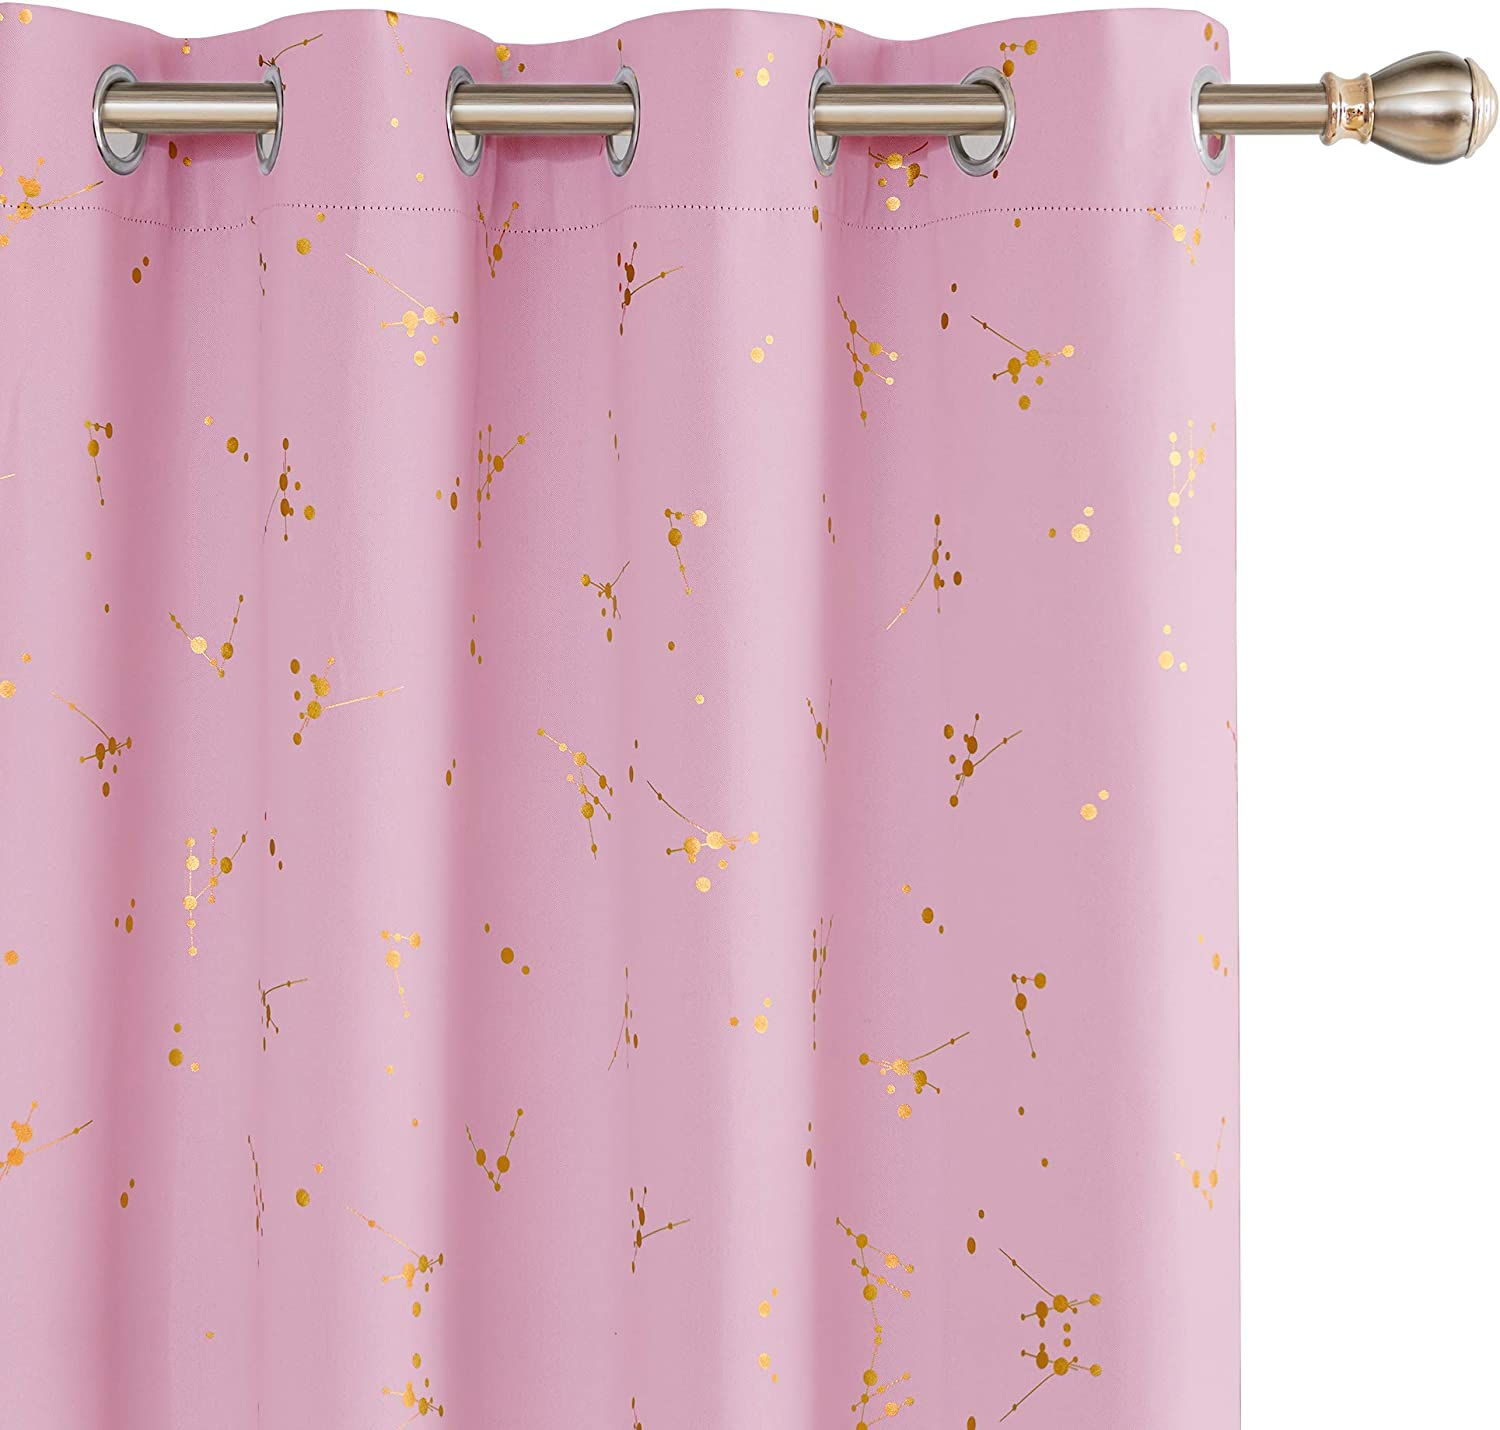 Deconovo Thermal Insulated Curtains Eyelet Blackout Curtains Gold Constellation Printed Curtains for Bedroom with Two Matching Tie Backs Royal Blue W55 x L90 One Pair